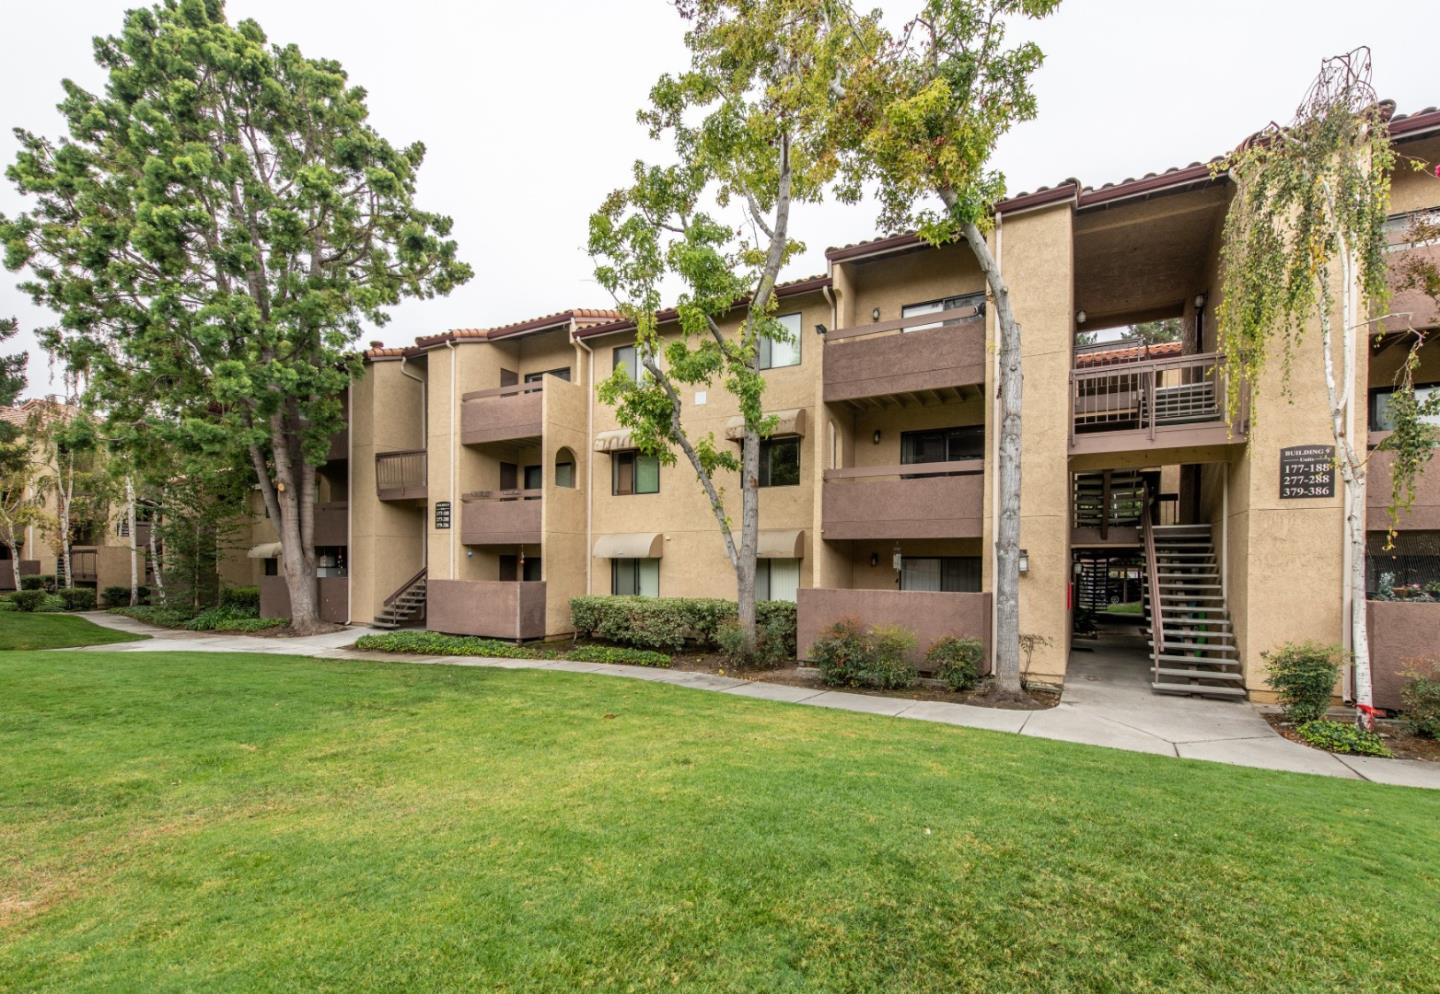 2250 Monroe Street Unit 281 Santa Clara, CA 95050 - MLS #: ML81722338